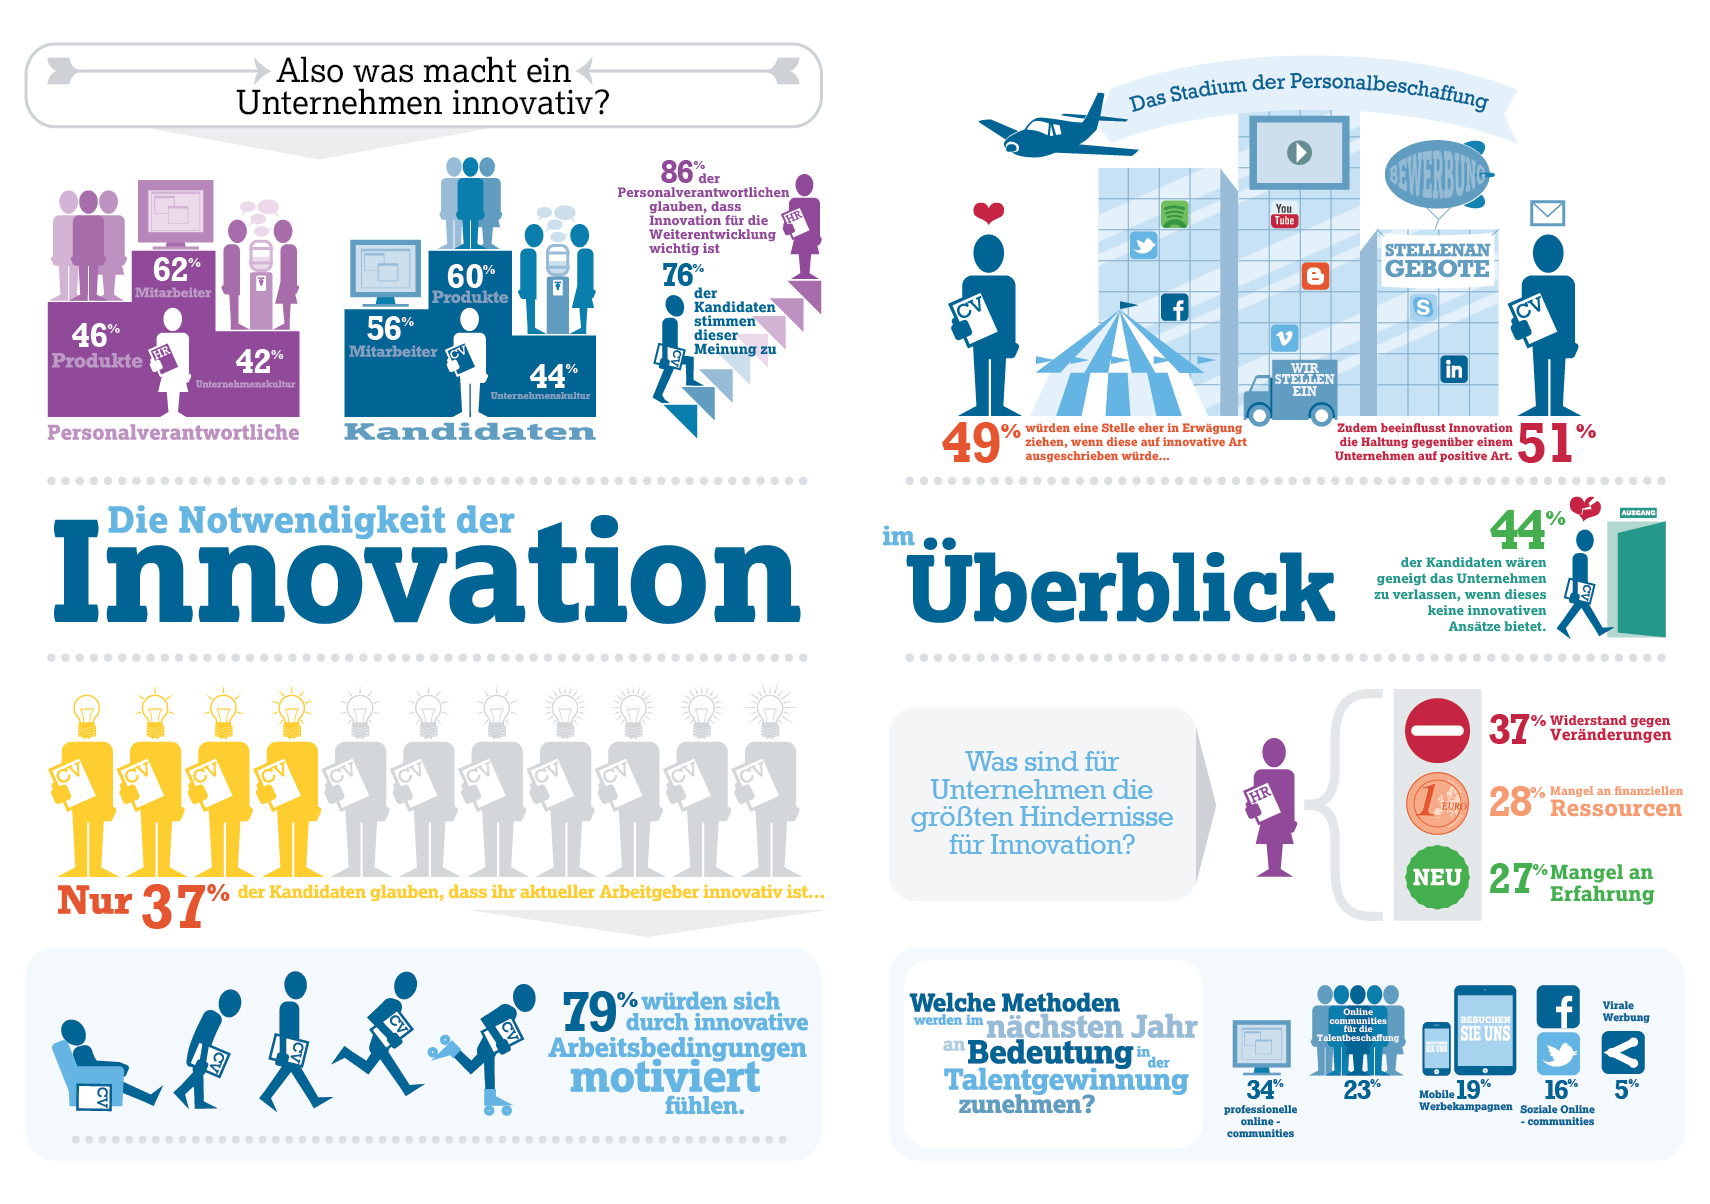 innovation imperitive print infographic_German Translation_V002_lores